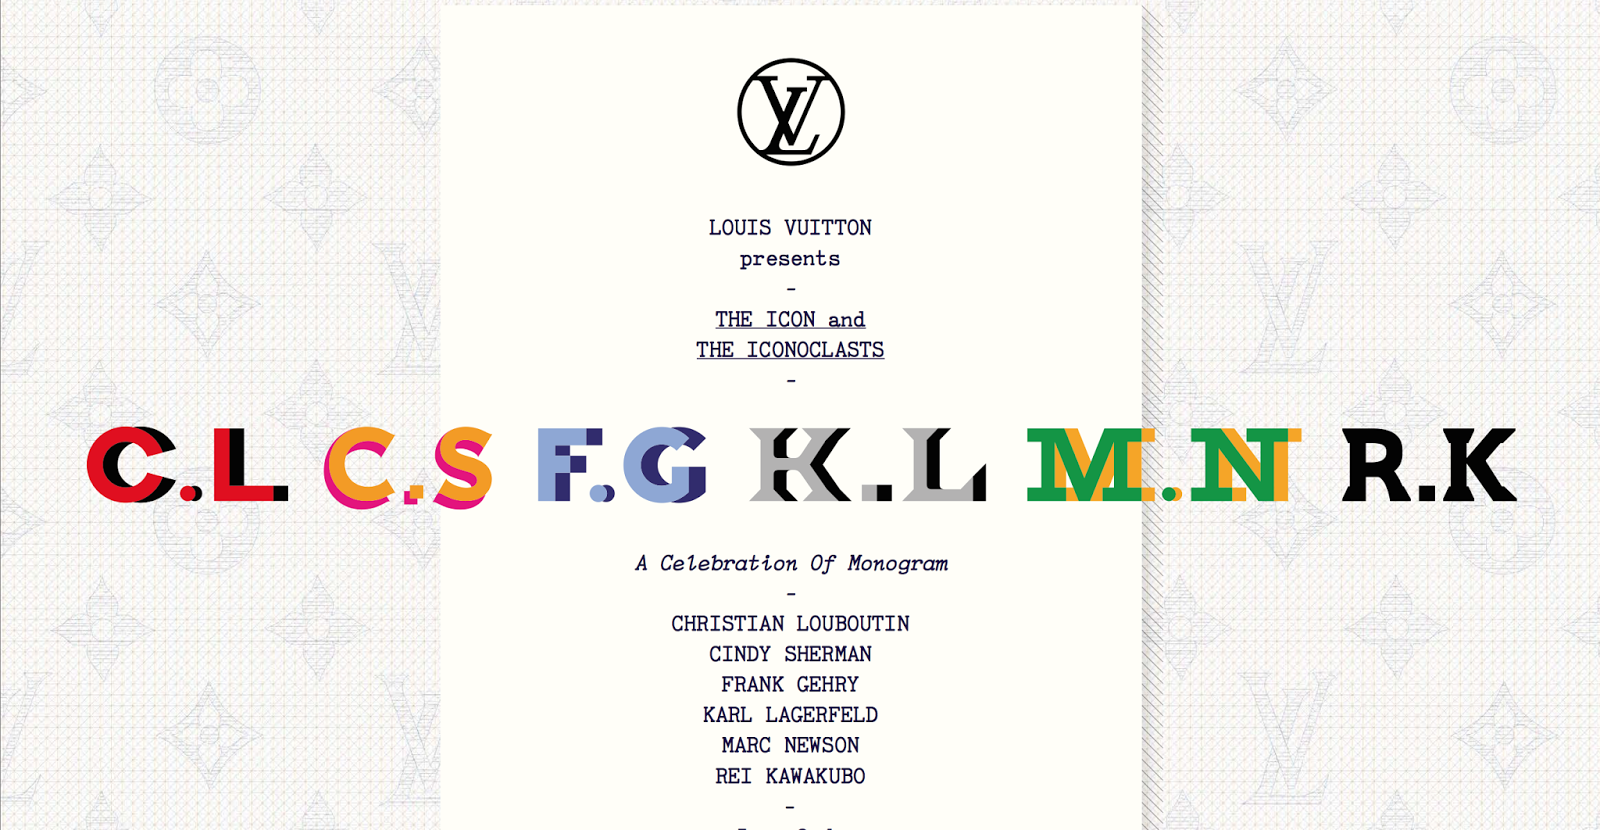 Louis Vuitton Collaborates With Fashion's Biggest Names for Icon & Iconoclasts Project